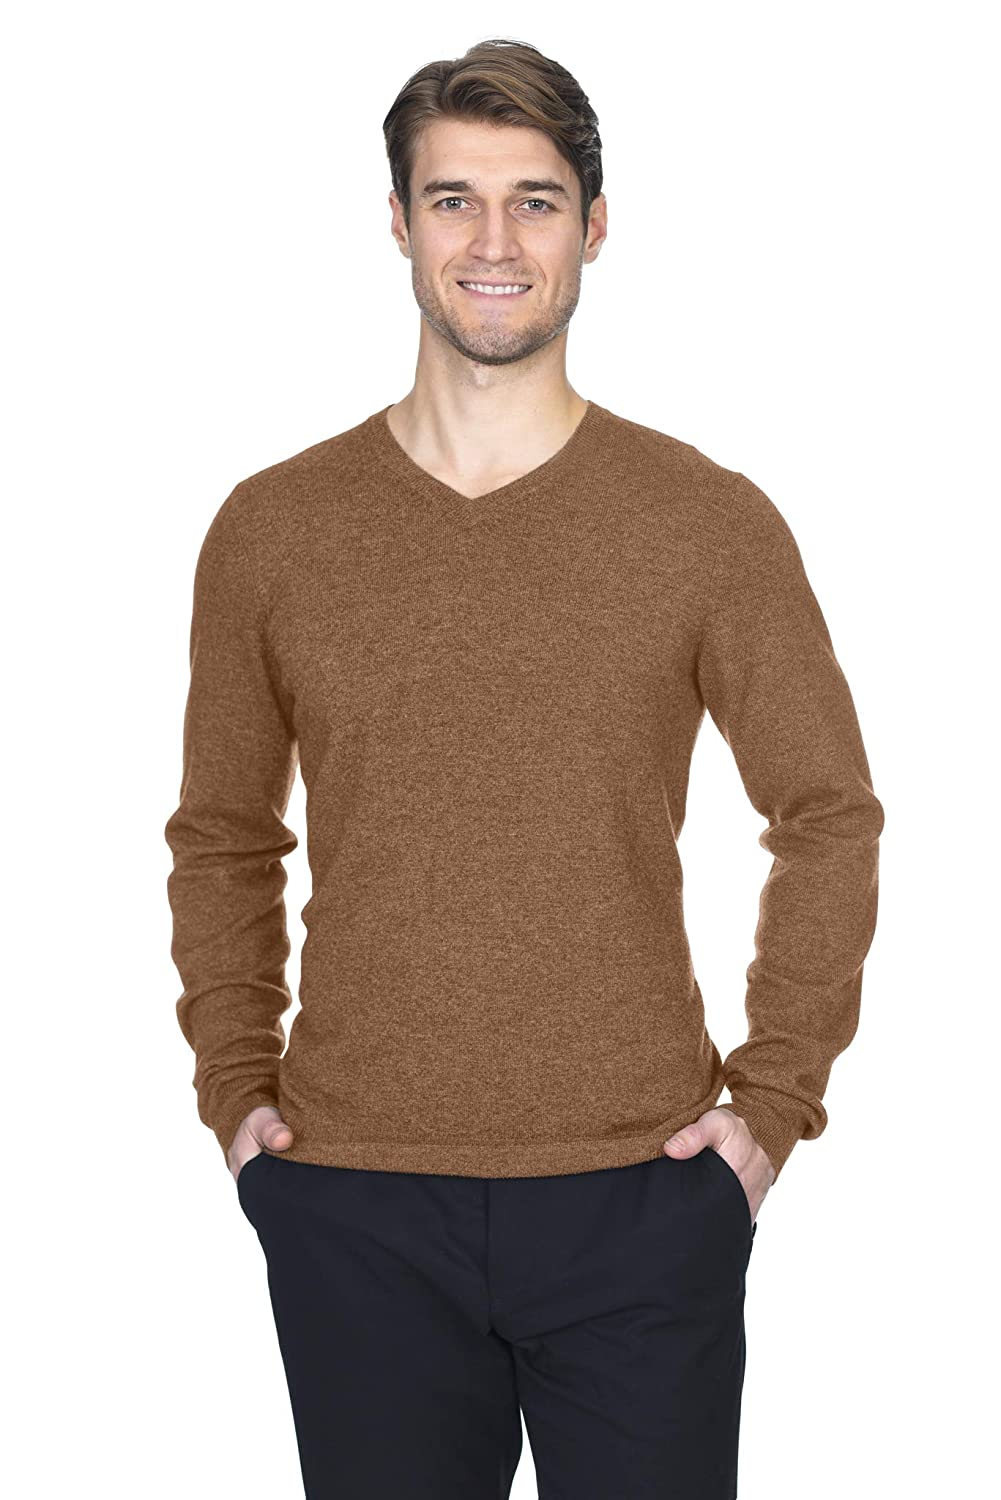 62d7433fc Amazon.com  State Fusio Men s Cashmere Wool Long Sleeve Pullover V Neck  Sweater Premium Quality  Clothing